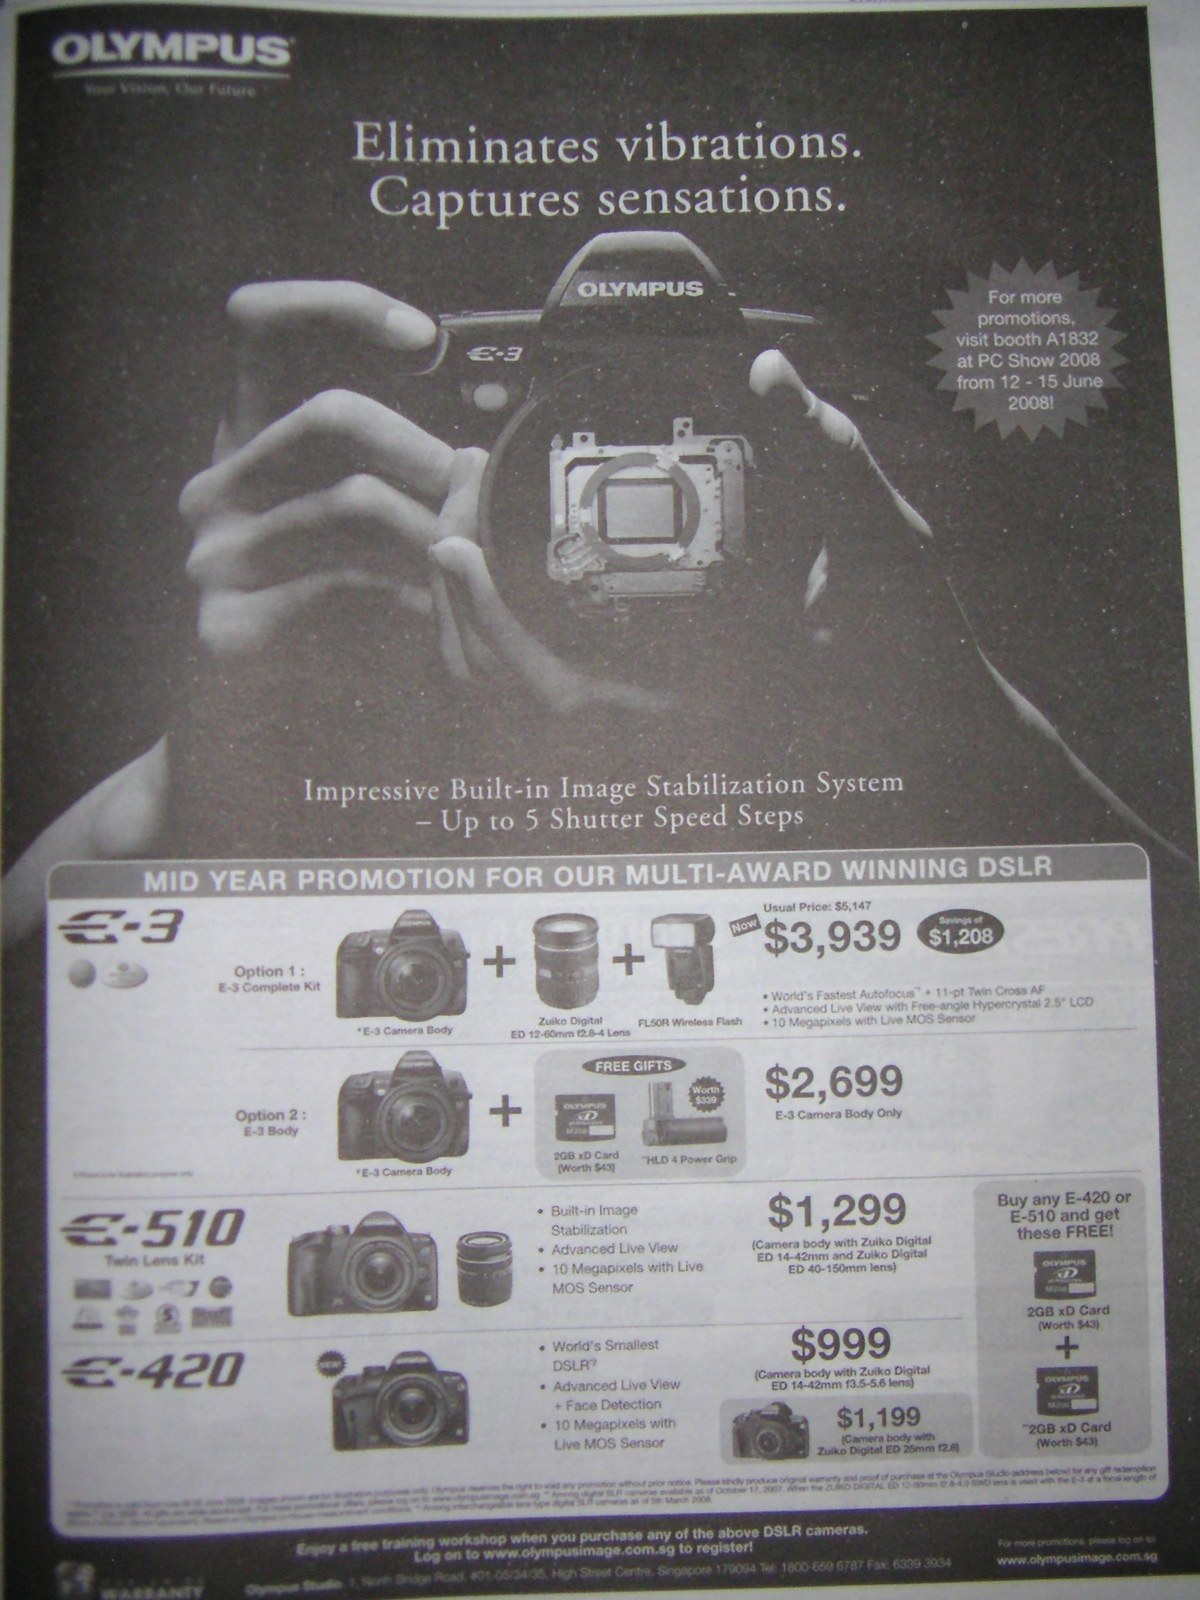 PC Show 2008 price list image brochure of Olympus Cameras